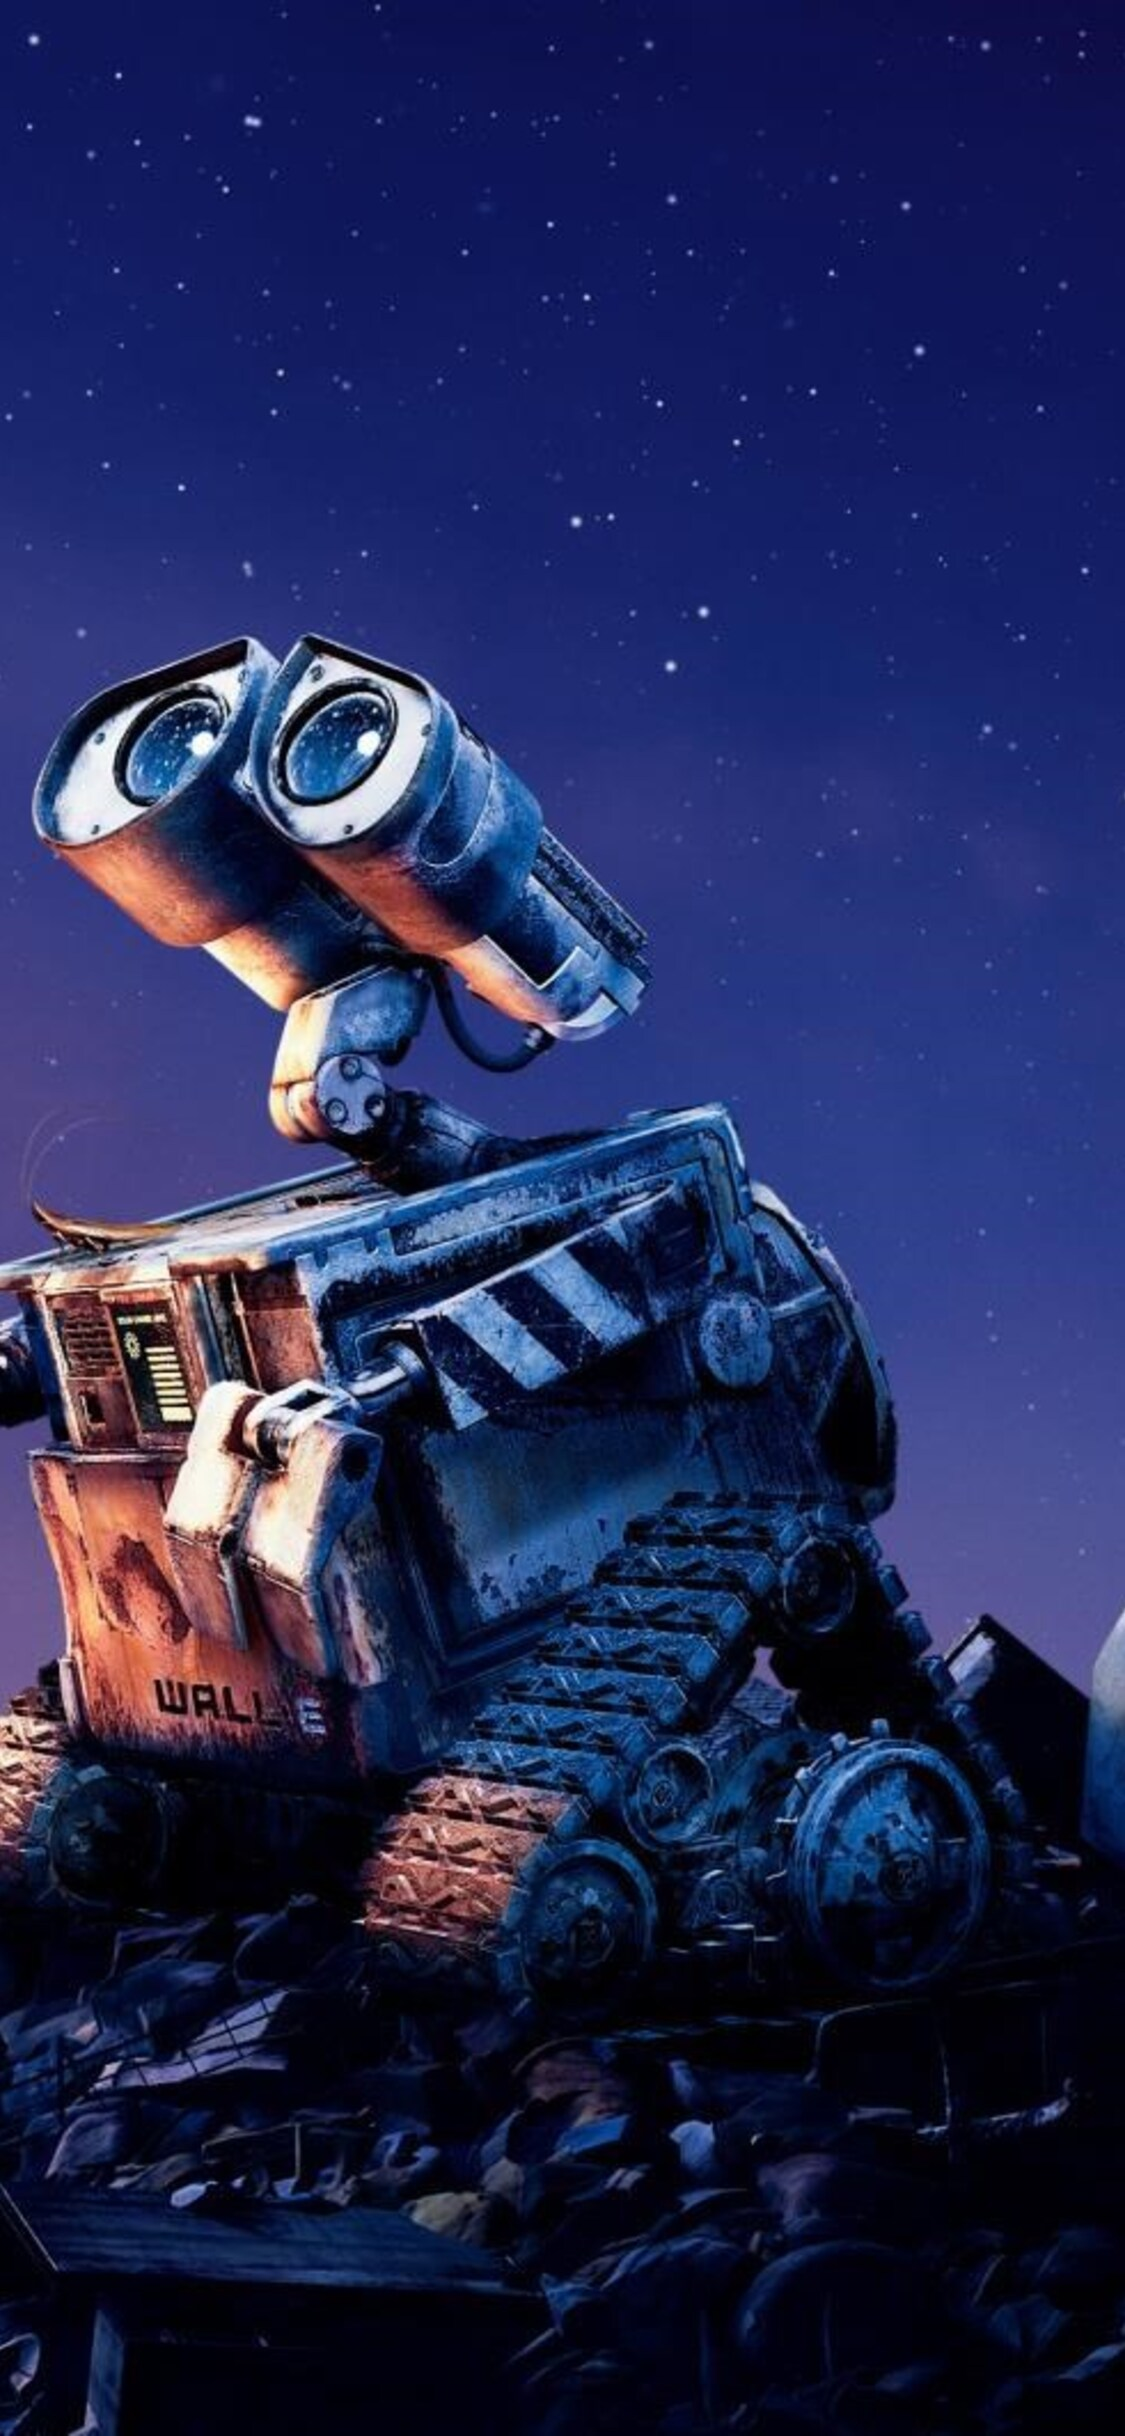 1125x2436 Movie Wall E Iphone Xs Iphone 10 Iphone X Hd 4k